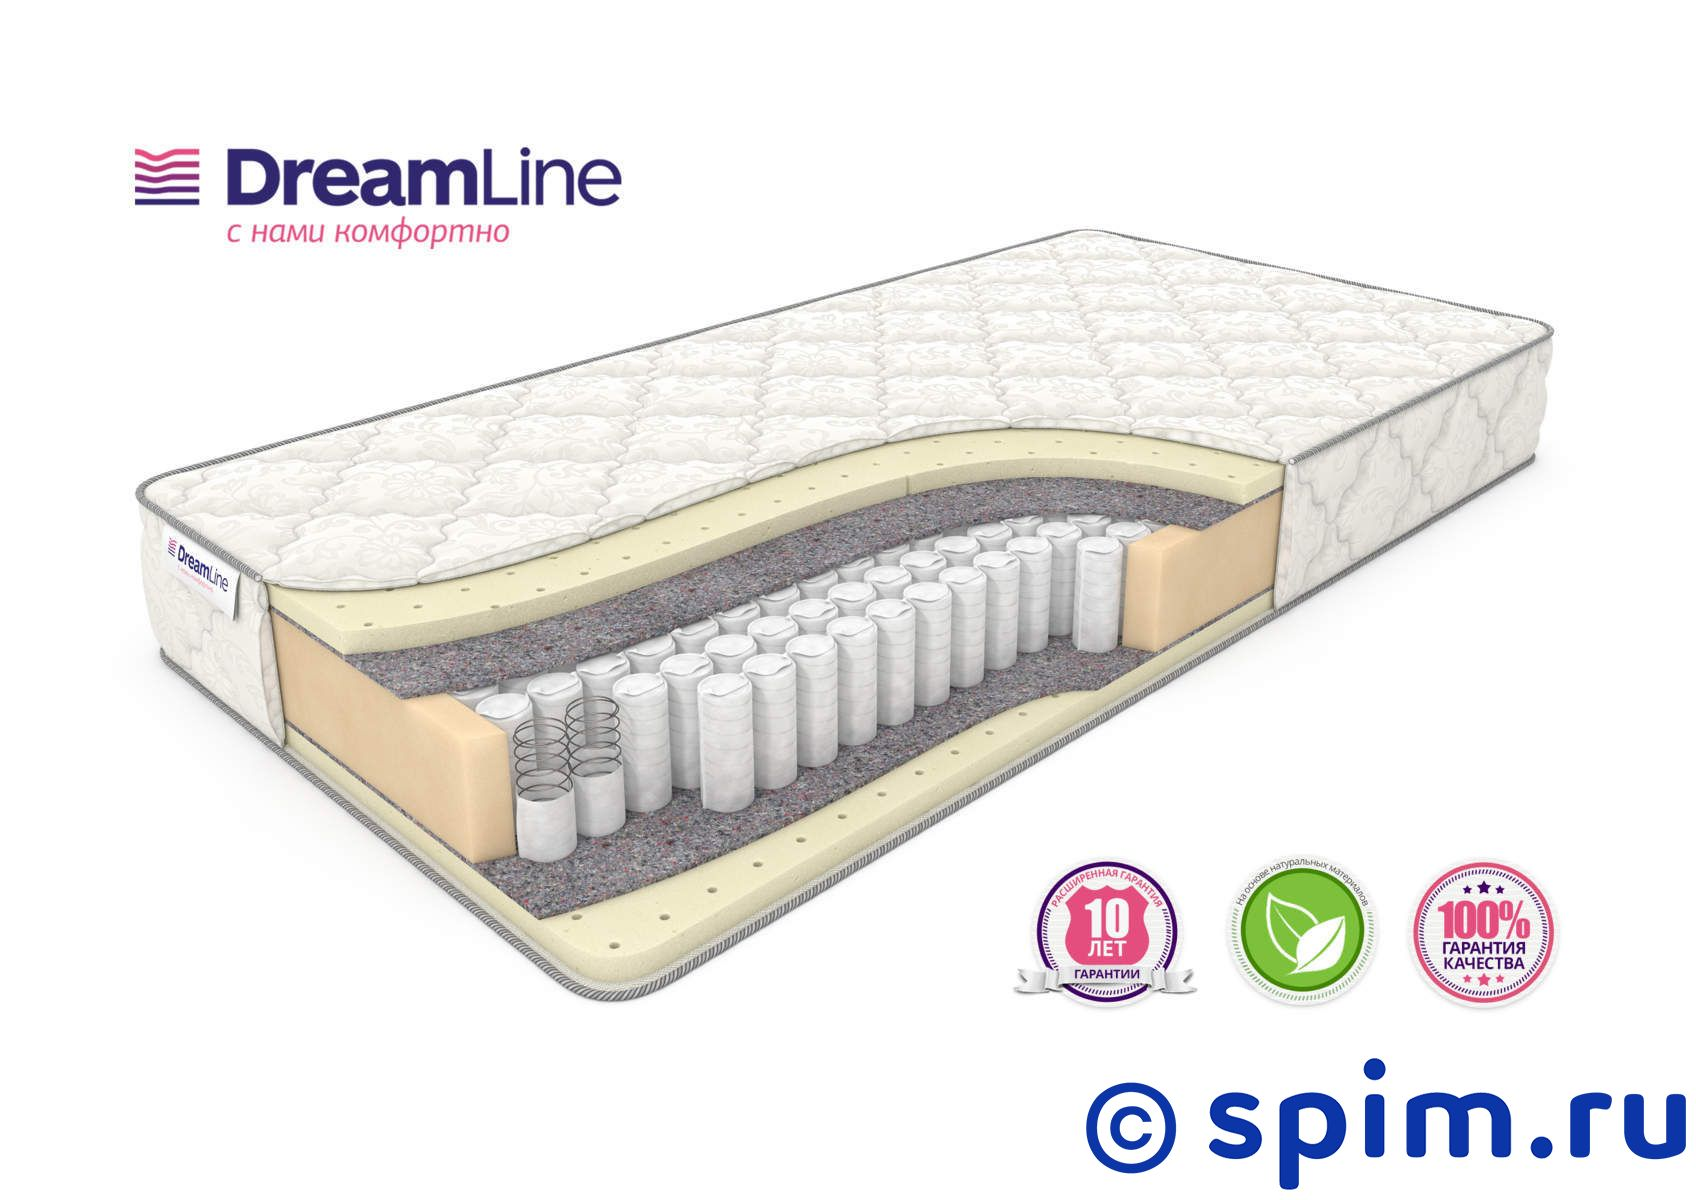 Матрас DreamLine Sleep 2 Tfk 160х190 см